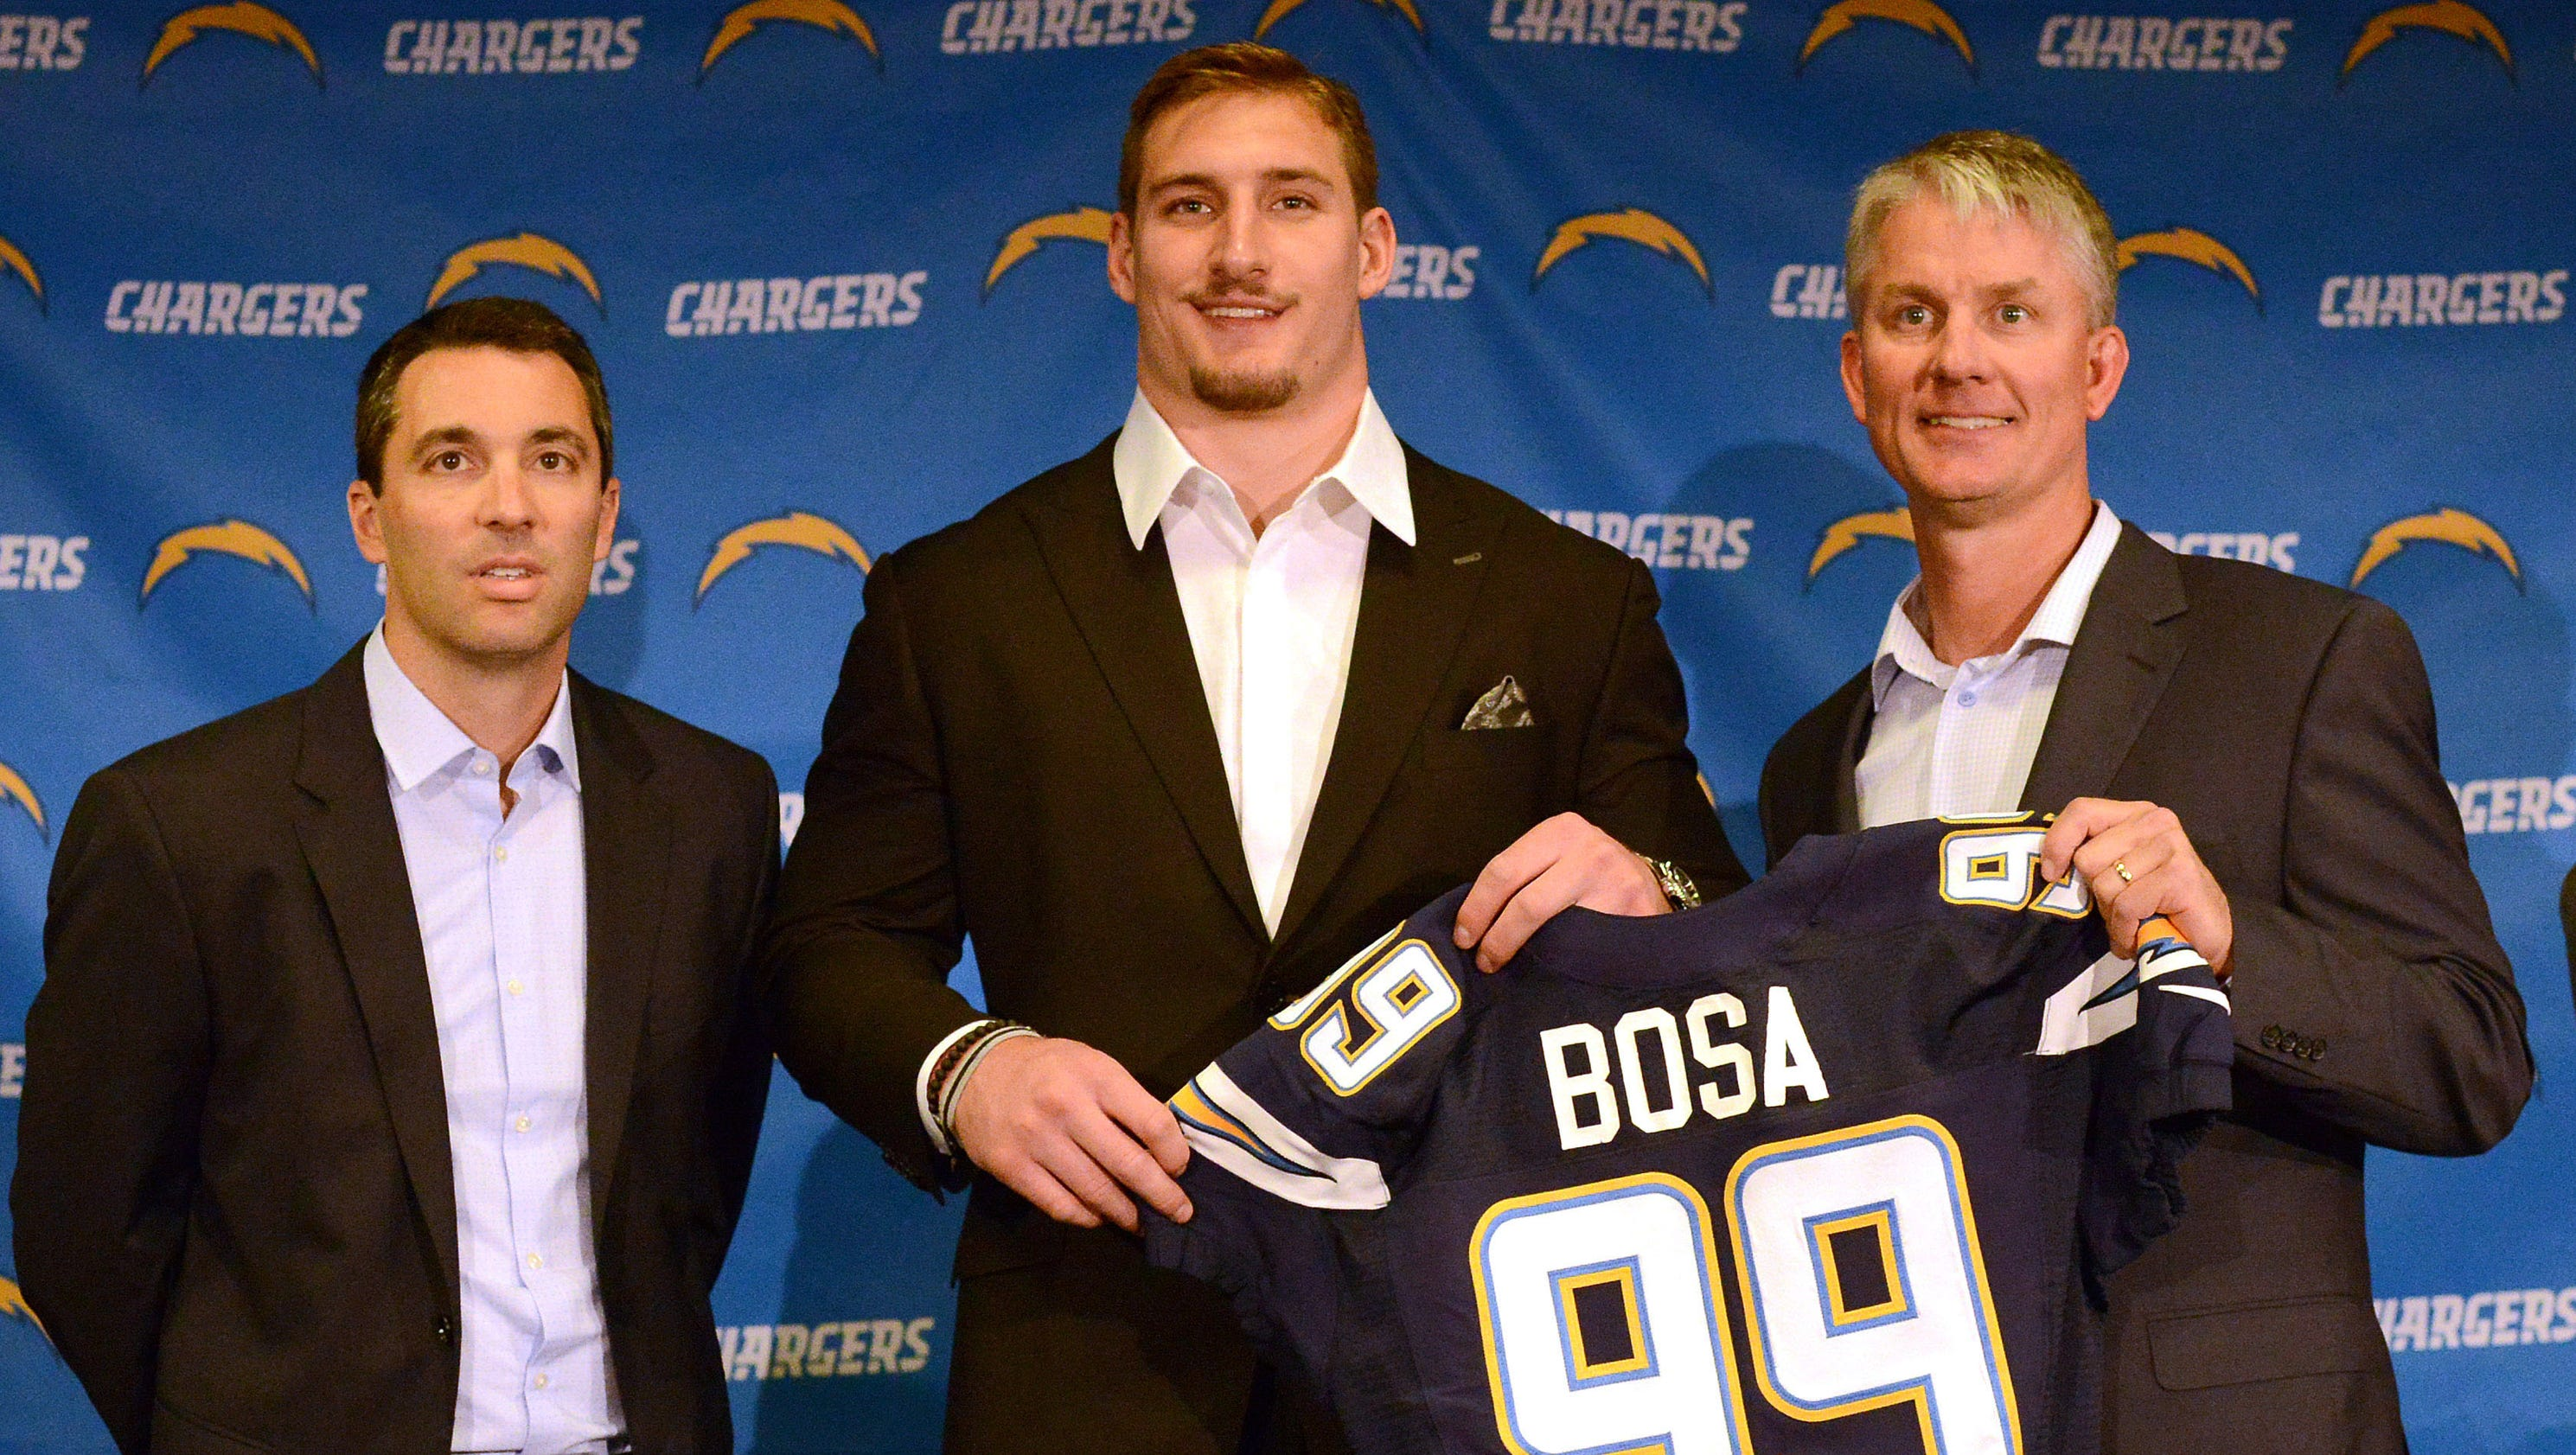 Chargers Scorched Earth Move With Joey Bosa Leaves Few